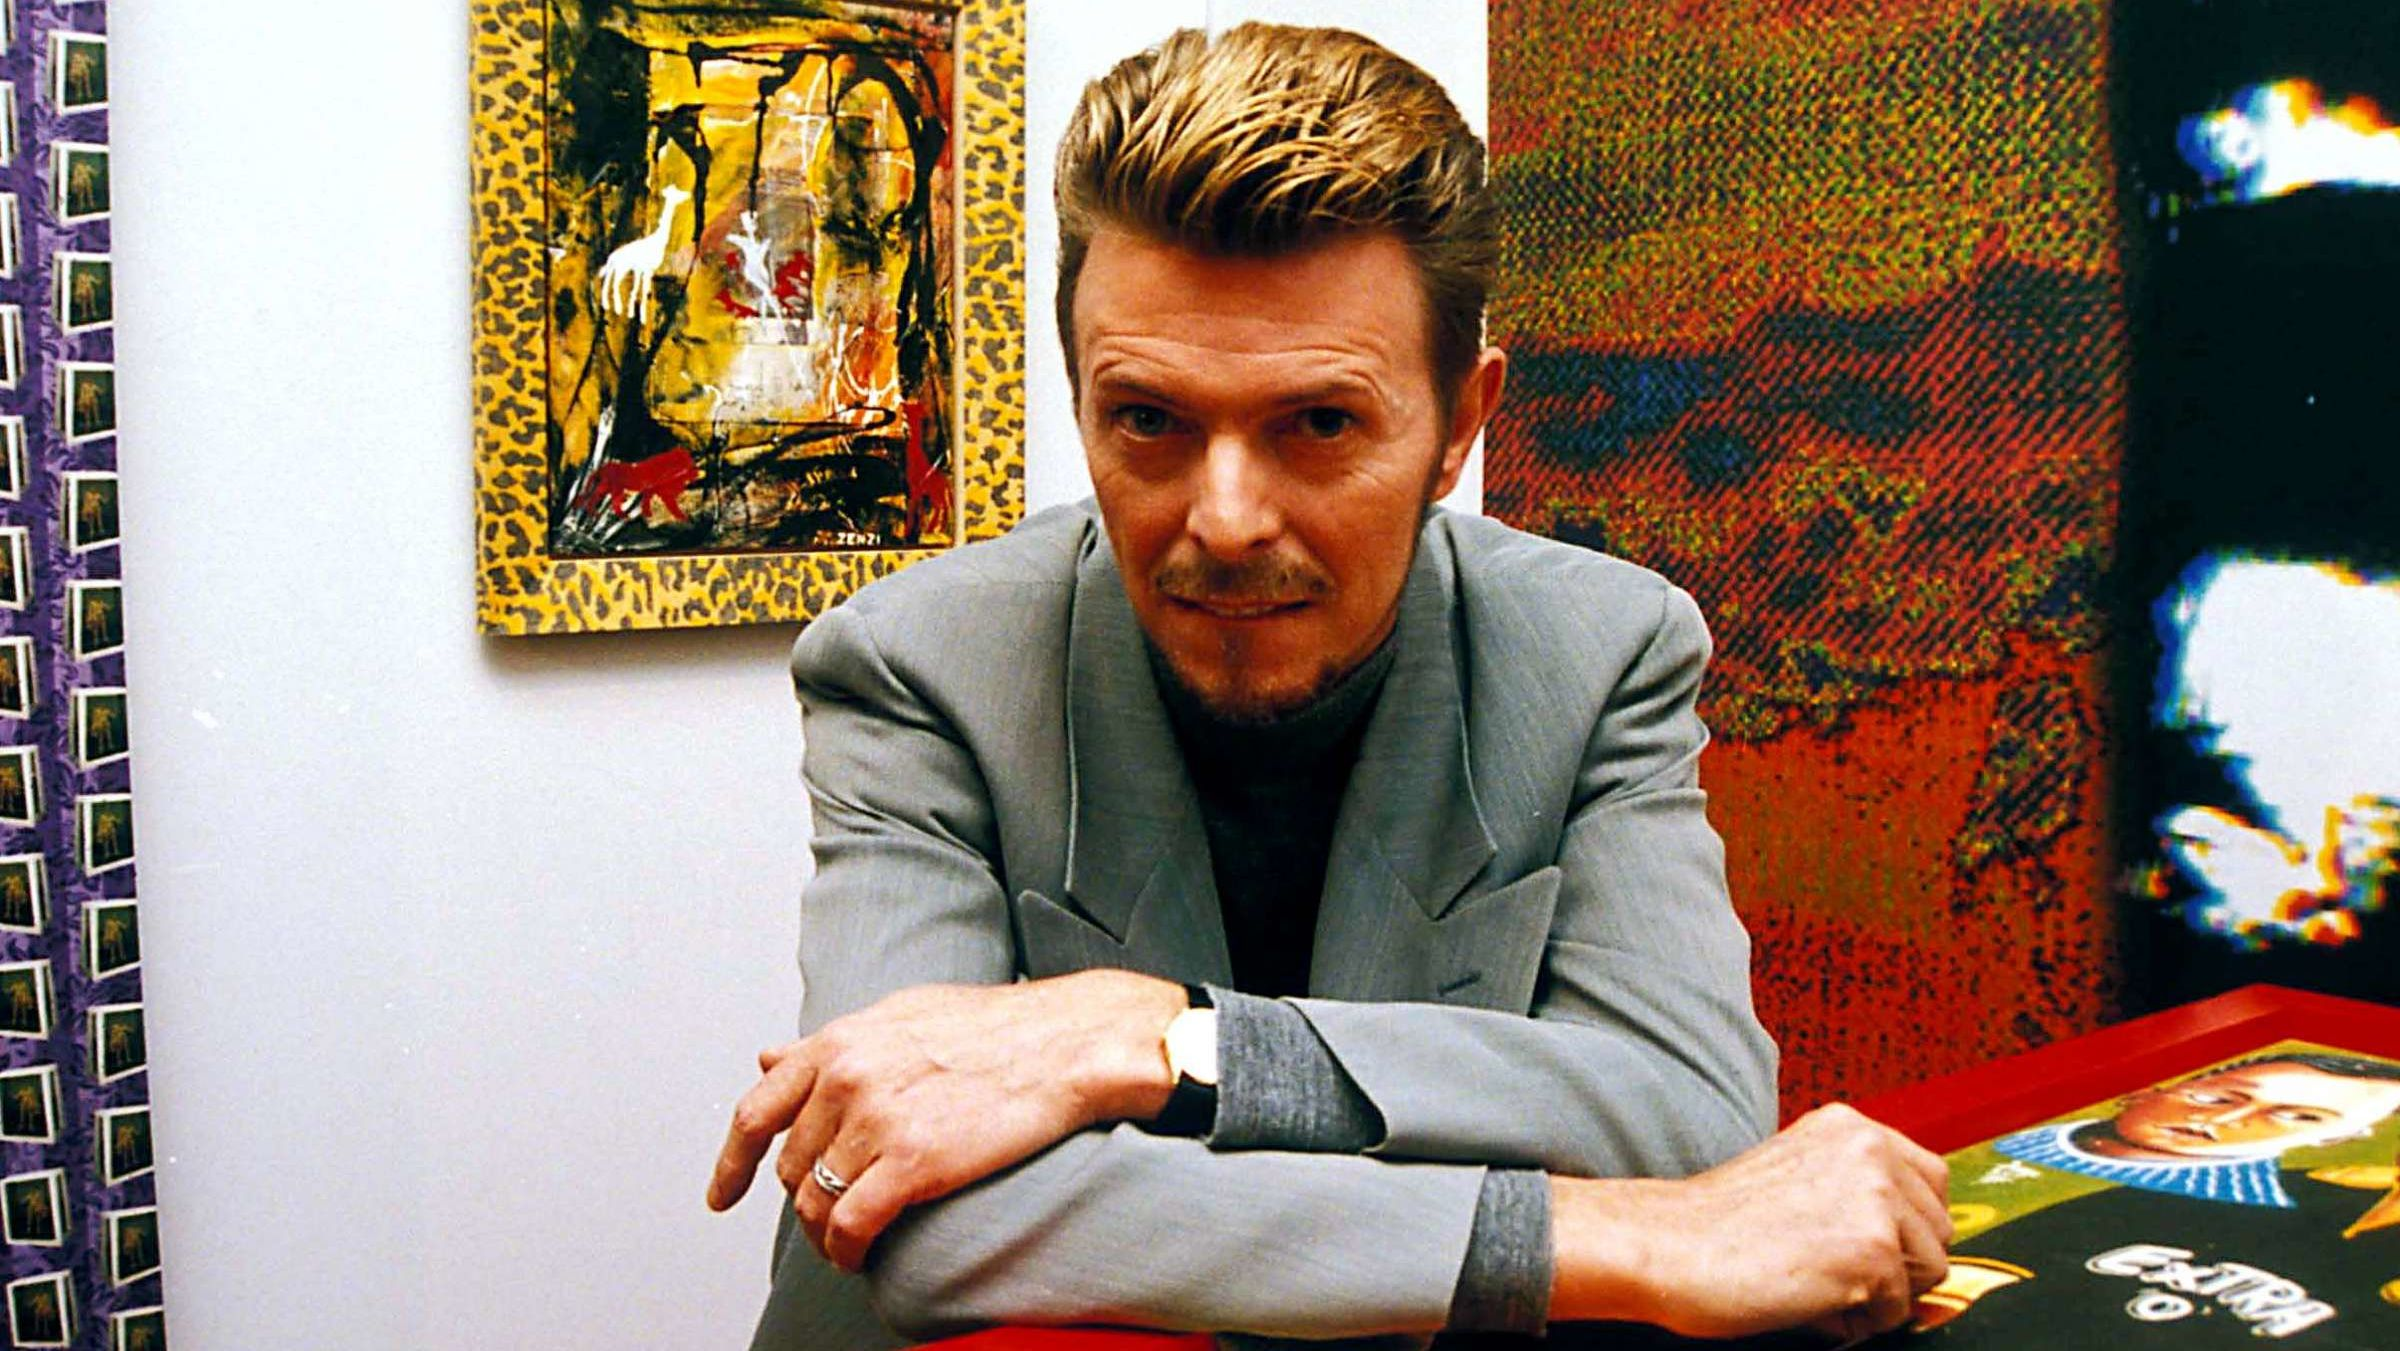 A Painting by David Bowie Bought at a Thrift Store for $4 Will Sell for More Than $60,000